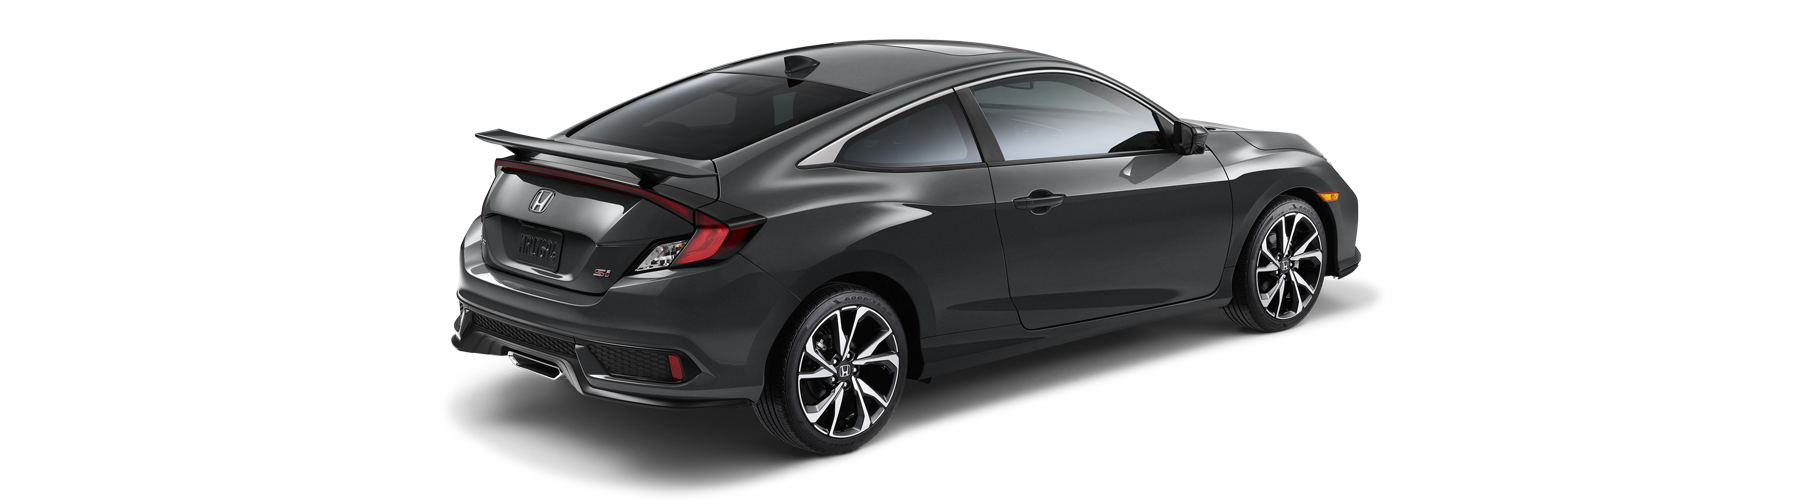 2017 Honda Civic Si Coupe | New England Honda Dealers